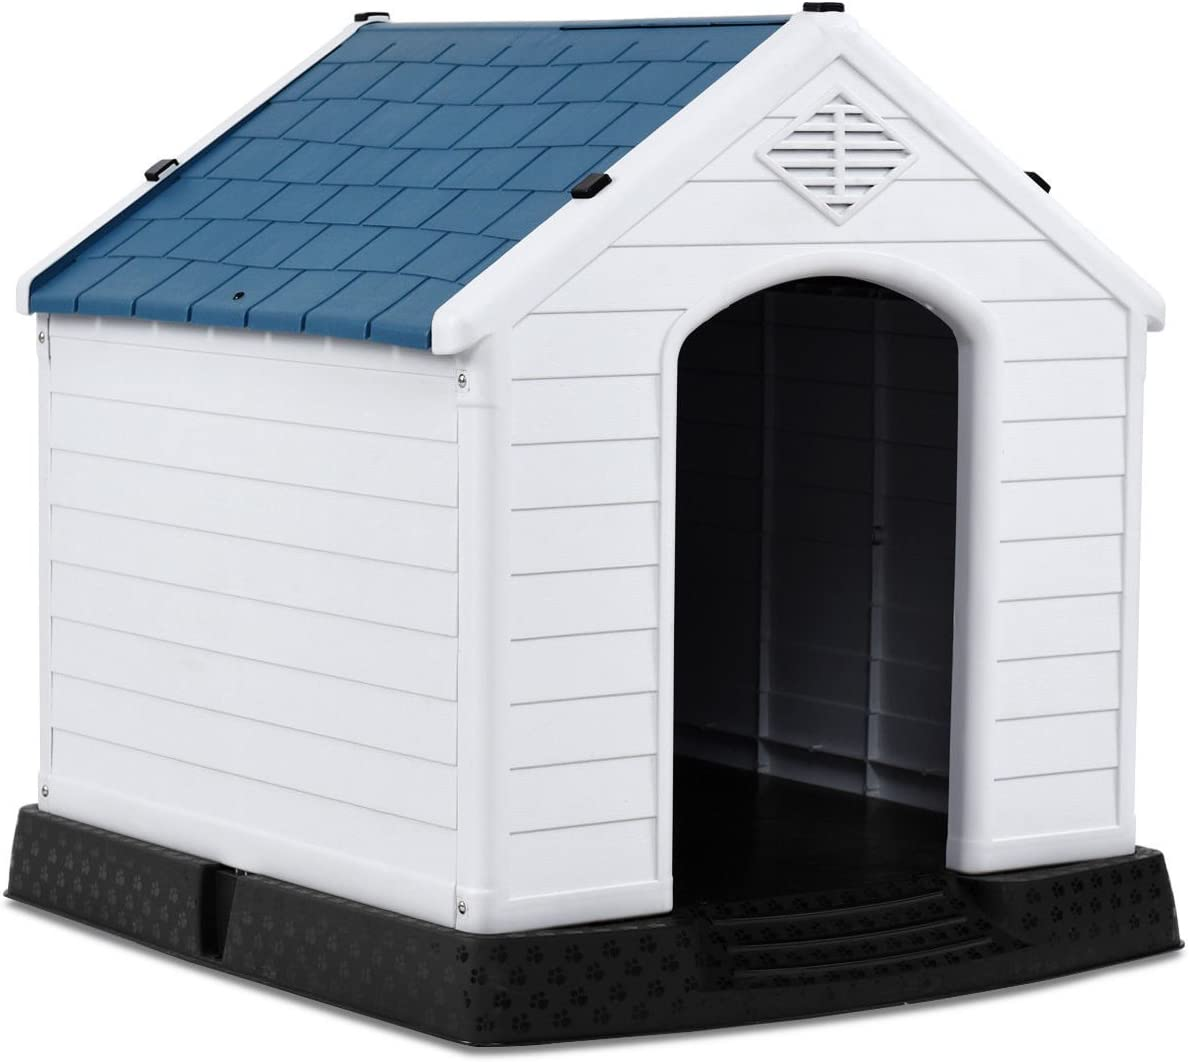 Giantex Plastic Dog House Waterproof Ventilate Pet Kennel with Air Vents and Elevated Floor for Indoor Outdoor Use Pet Dog House